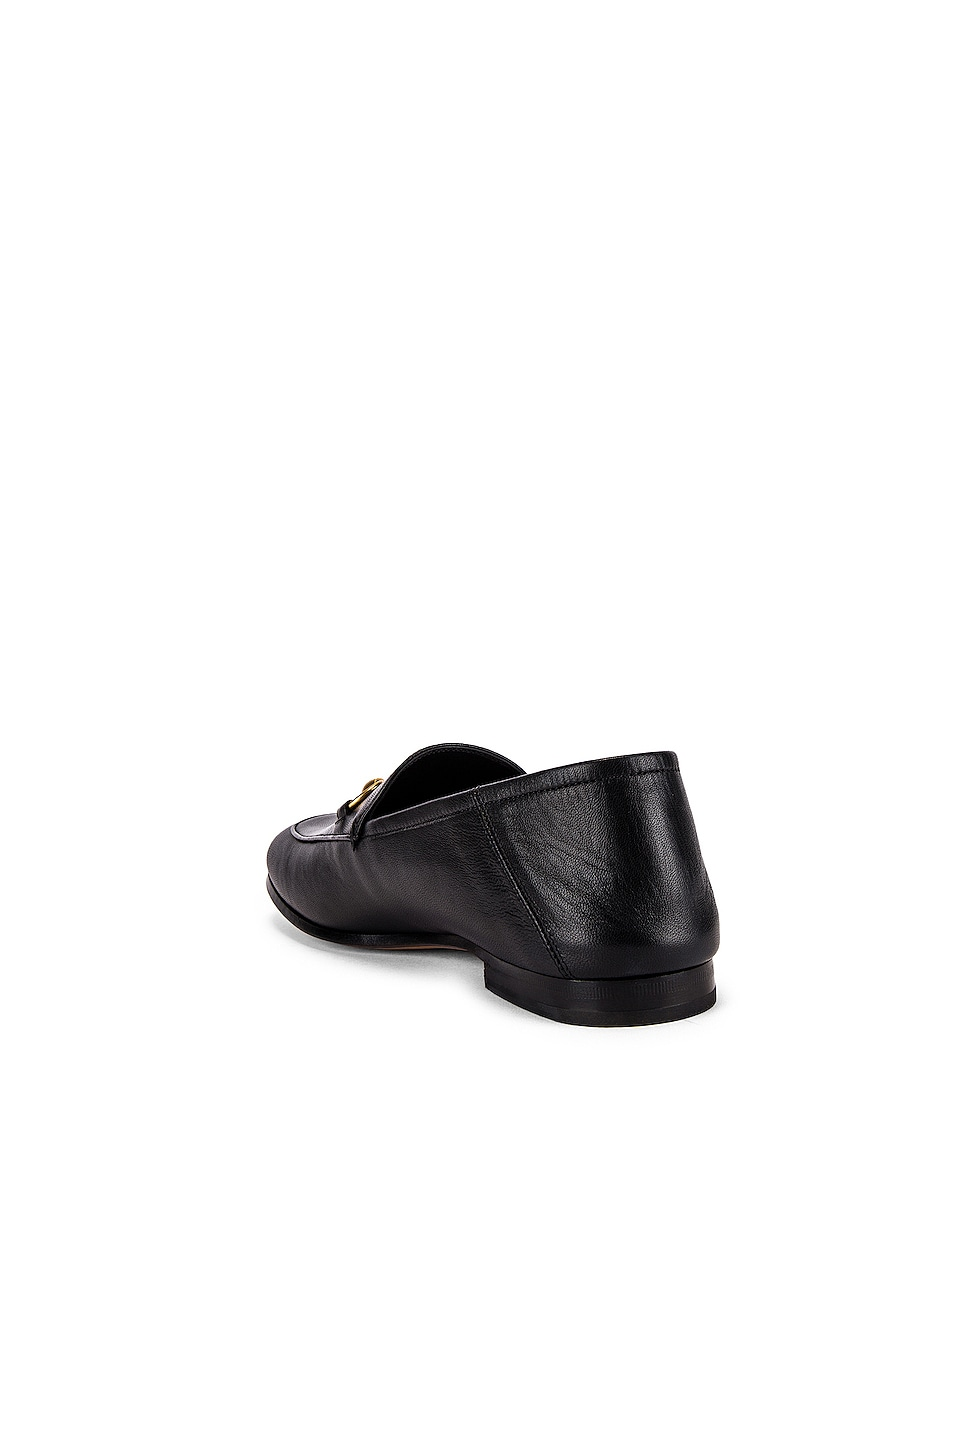 Image 3 of Gucci Ultrapace Loafer in Nero